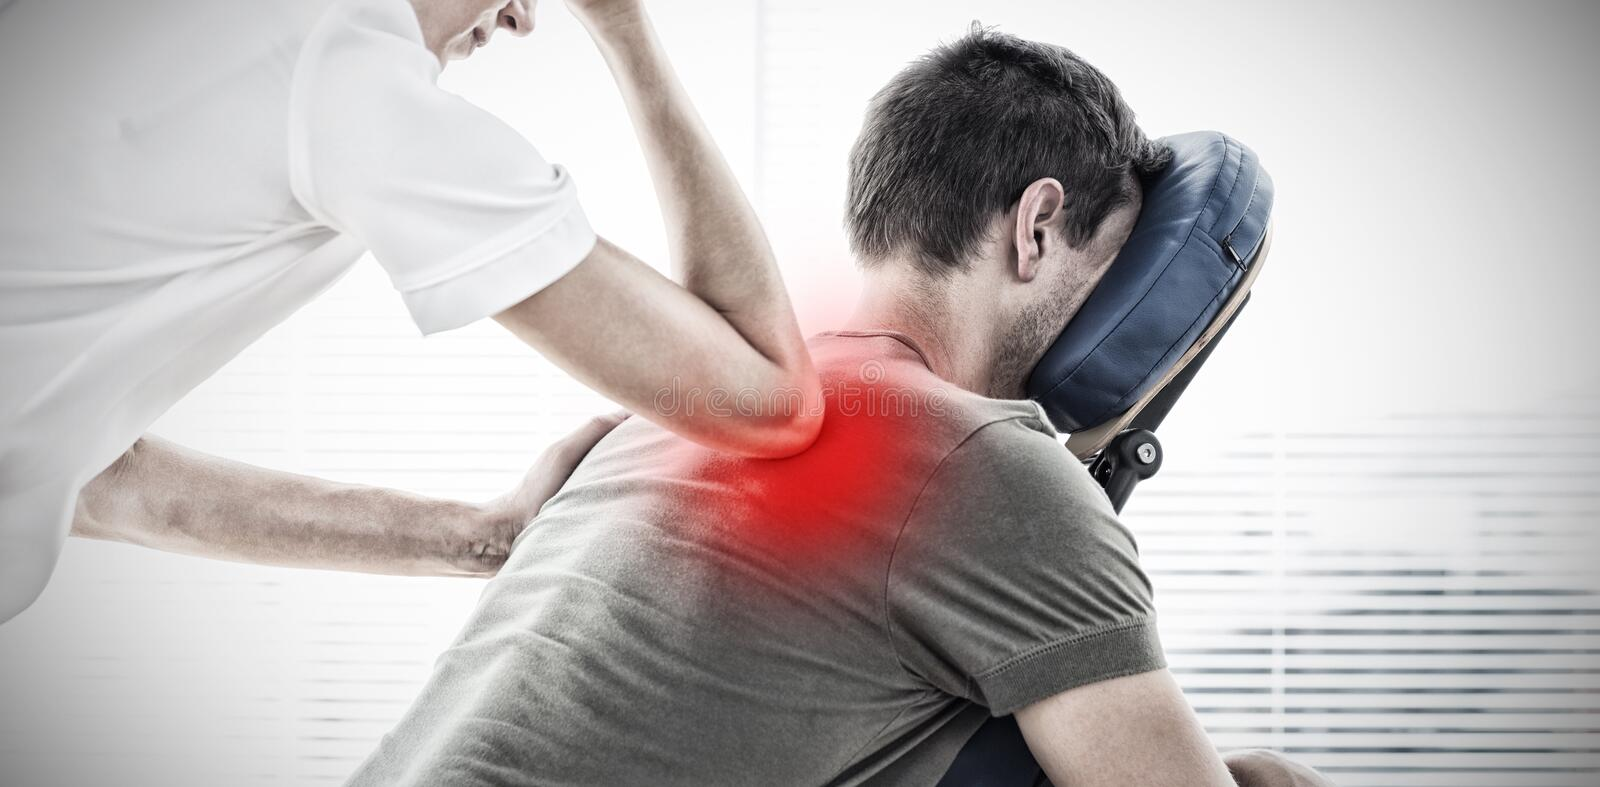 Composite image of therapist giving back massage to man royalty free stock photo